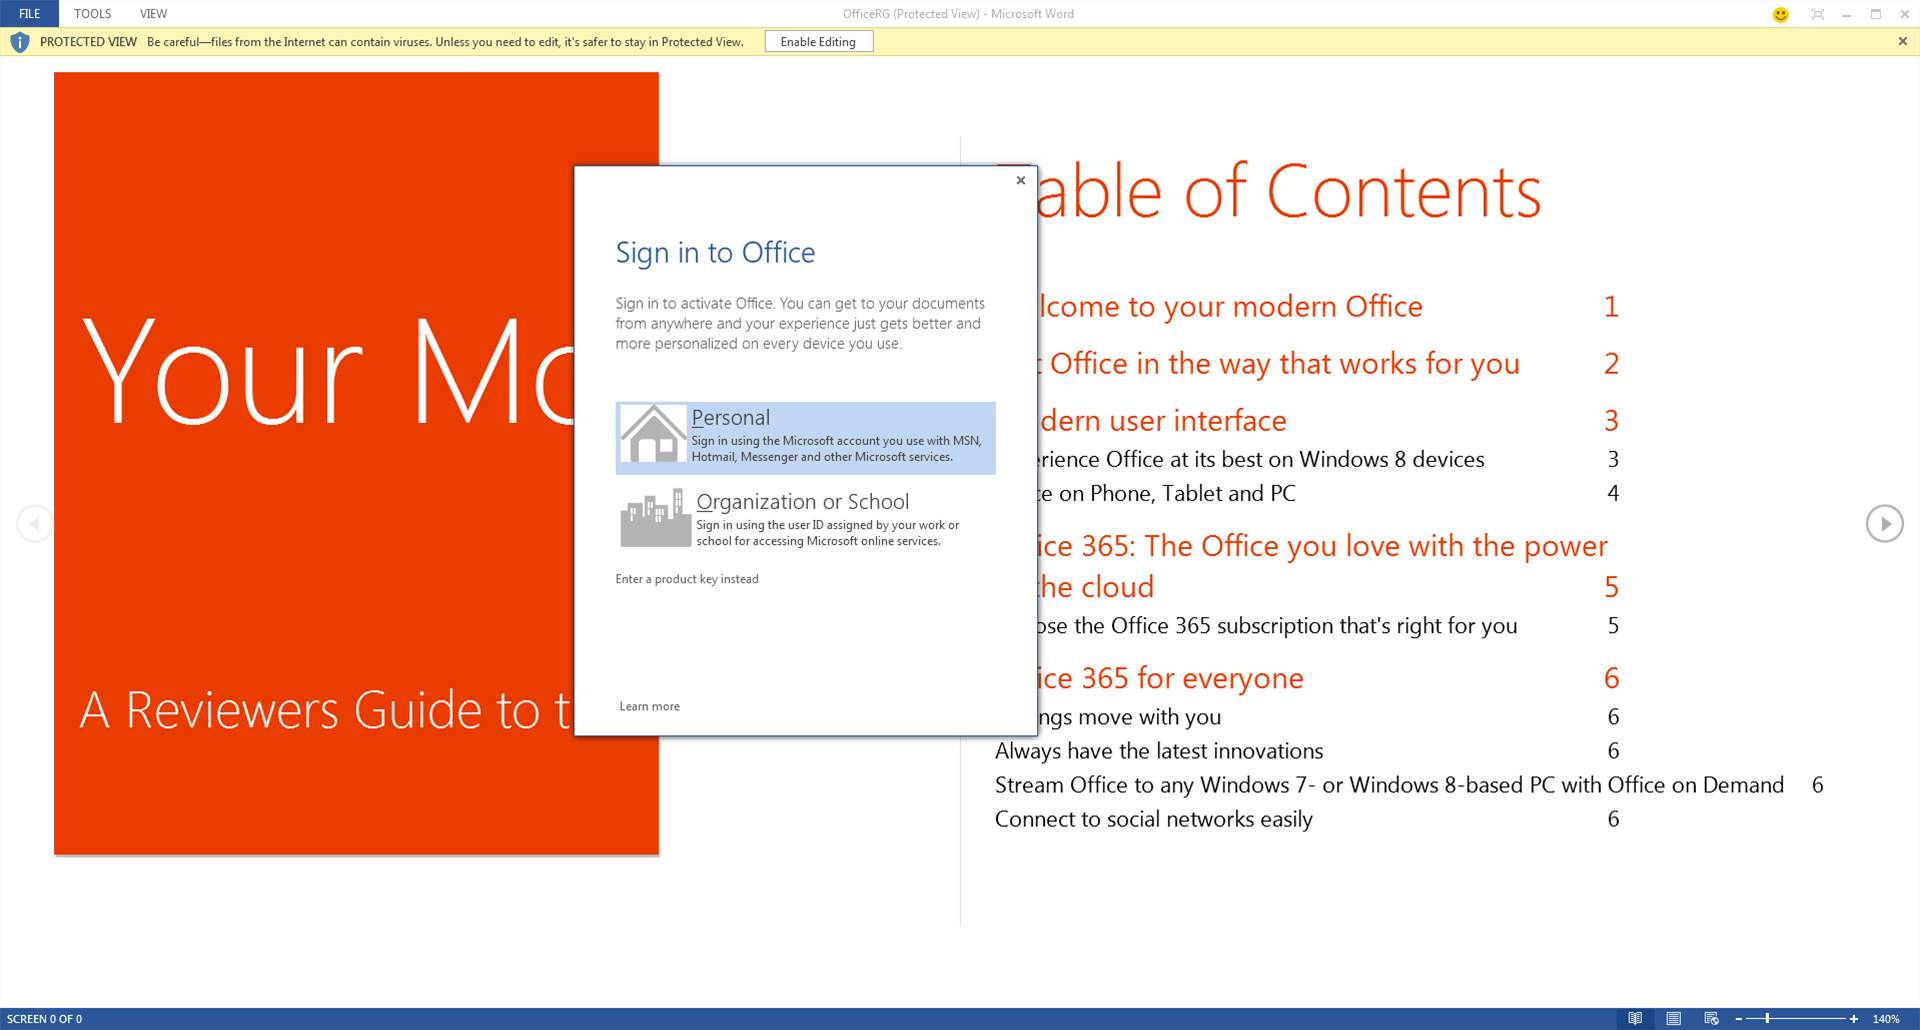 A Microsoft account is required to sign in to Office 365, which only runs on Windows 7 and 8.